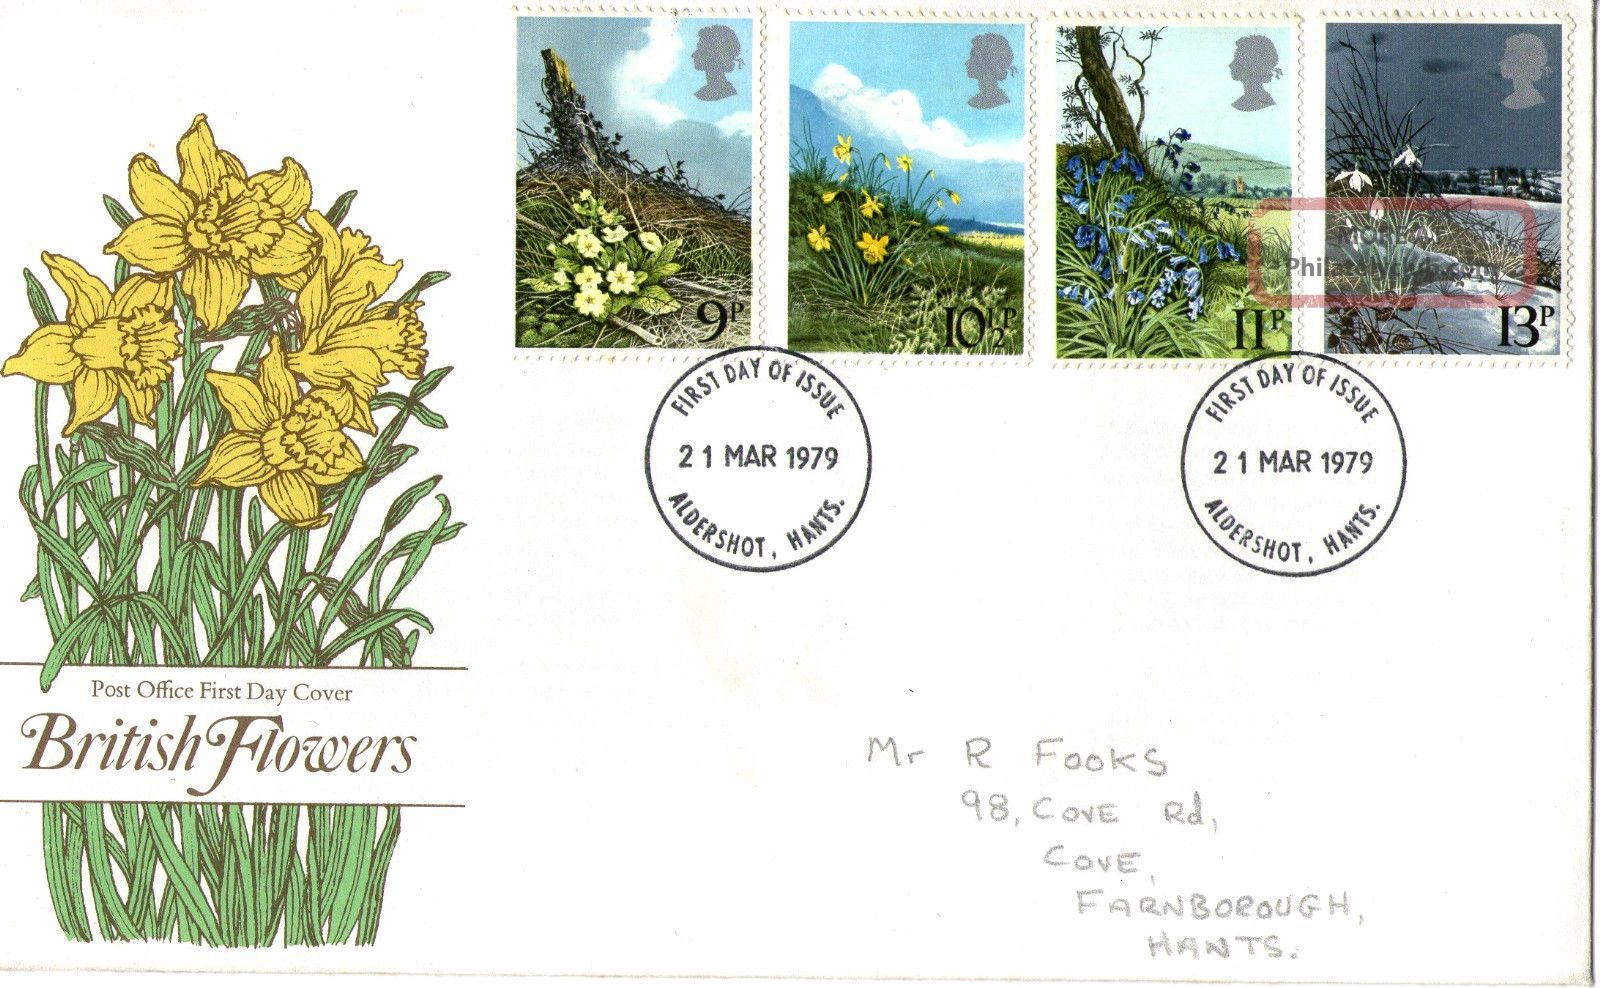 21 March 1979 Spring Flowers Post Office First Day Cover Aldershot Fdi Topical Stamps photo